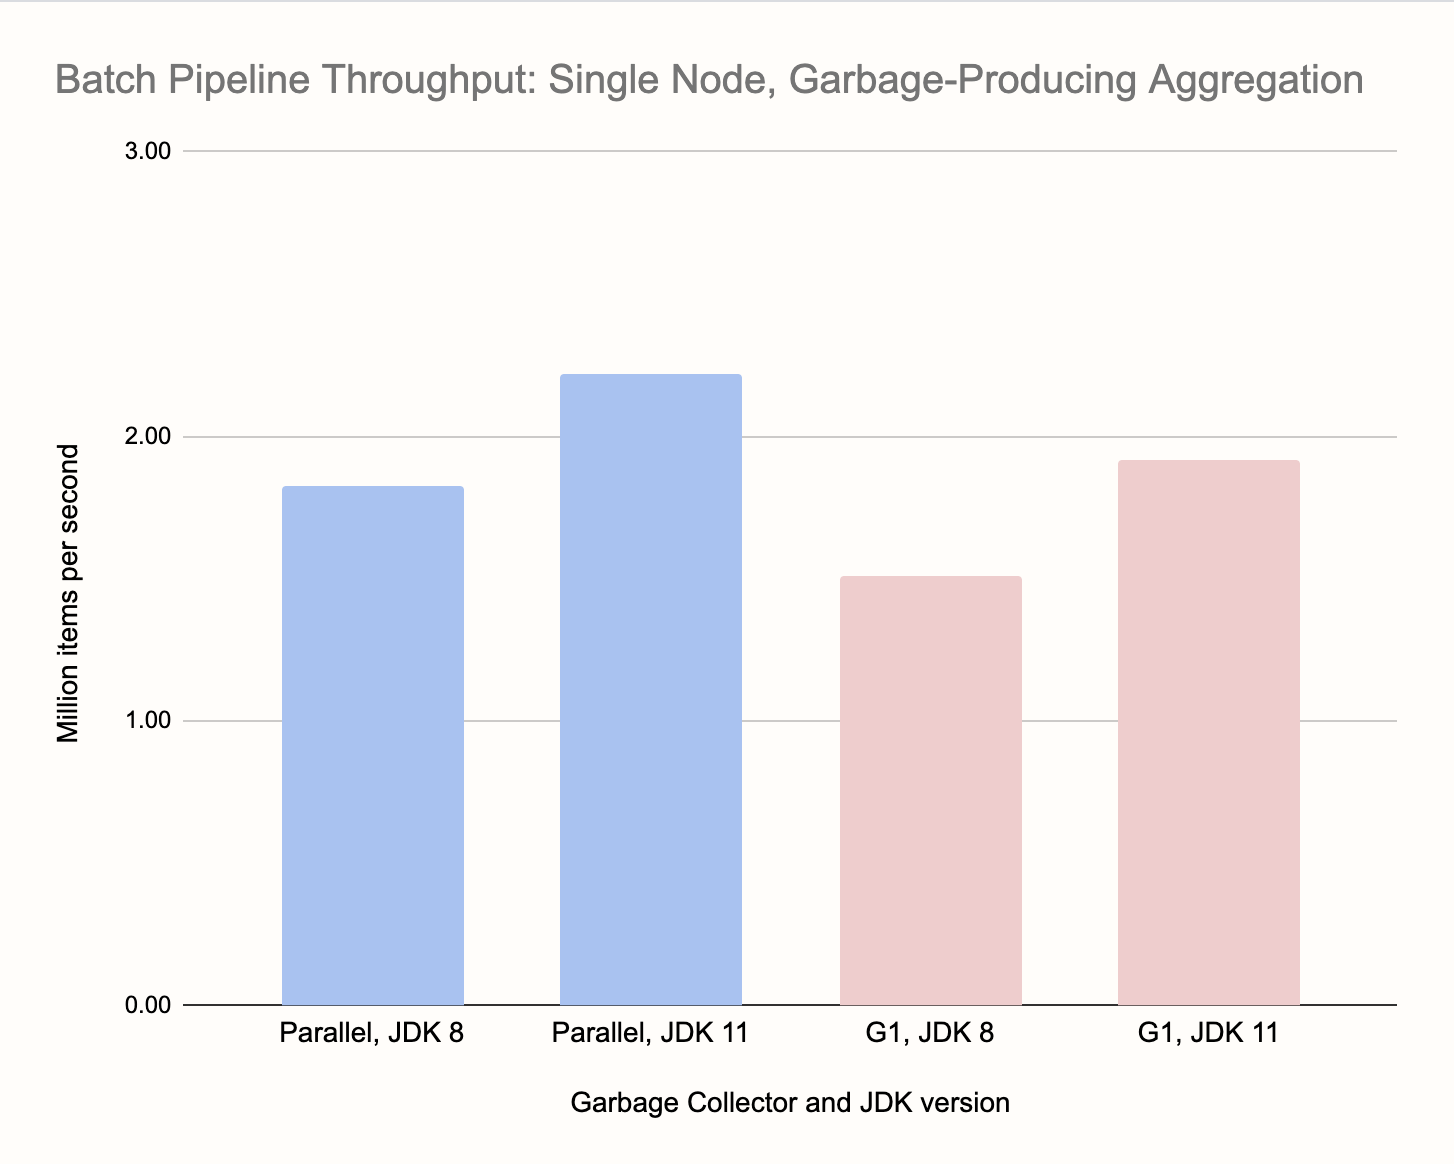 Single-node Batch pipeline with garbage-producing aggregation